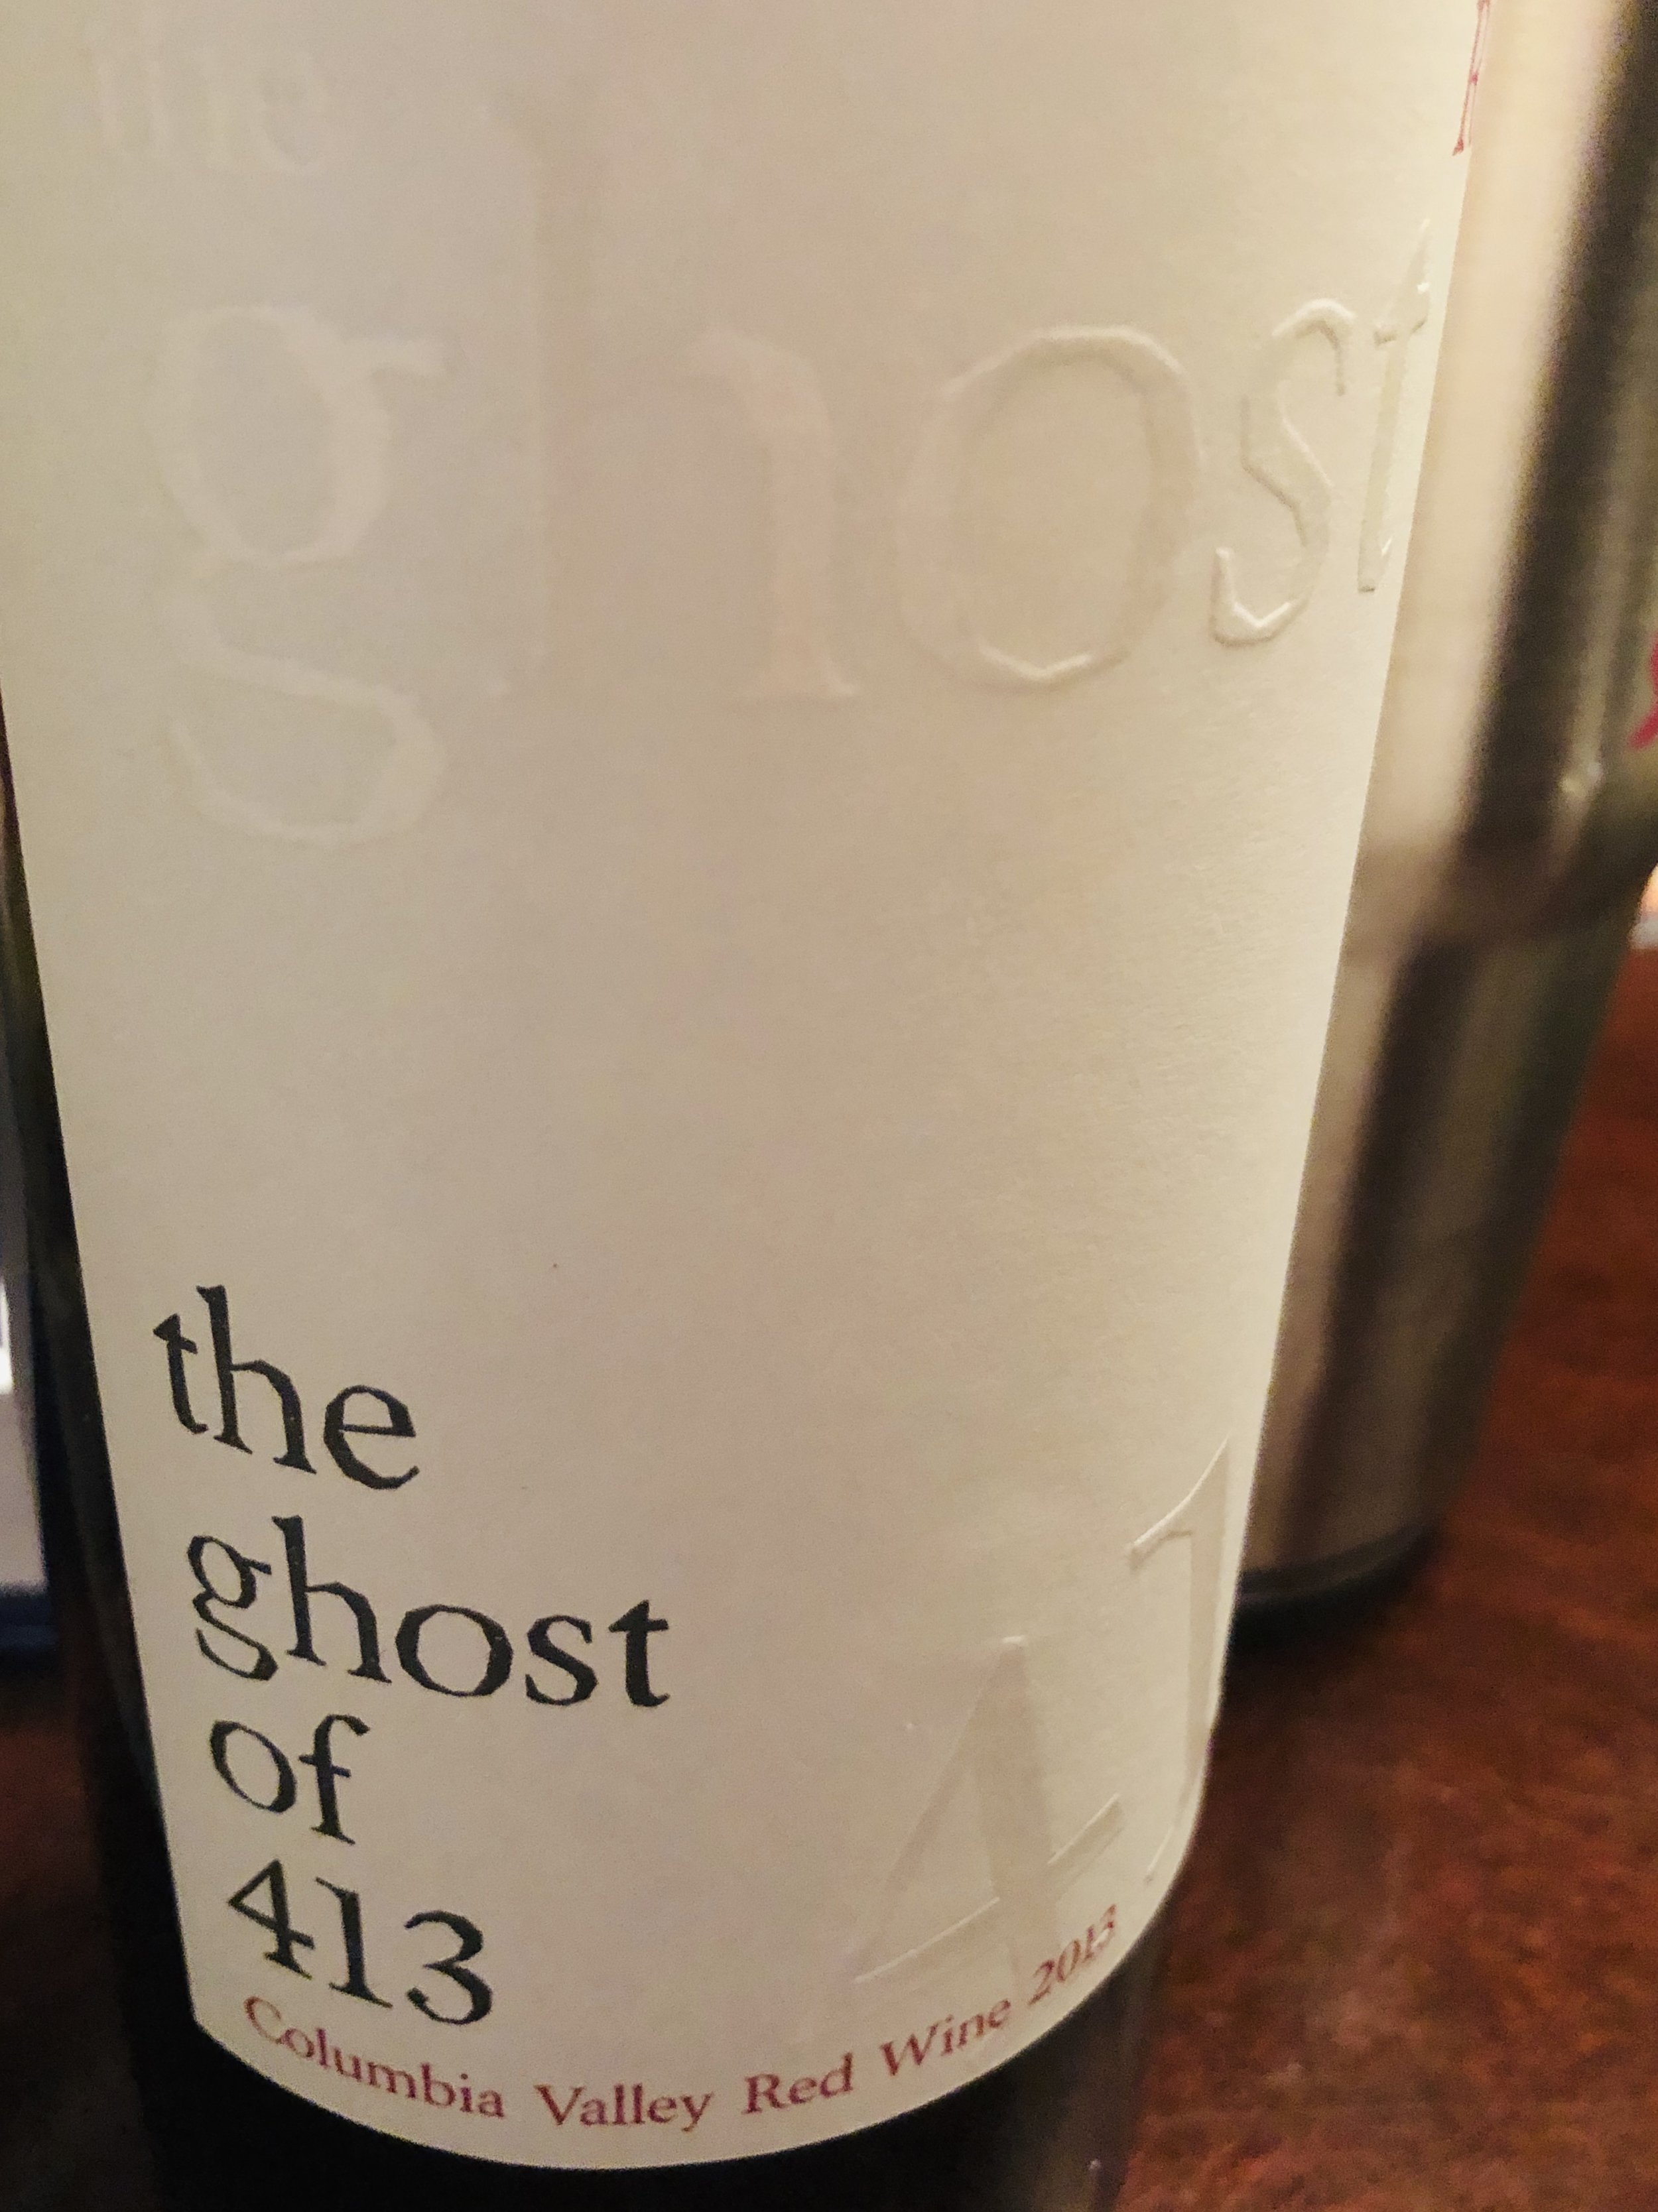 The Ghost of 413 Red Wine 2013.jpg